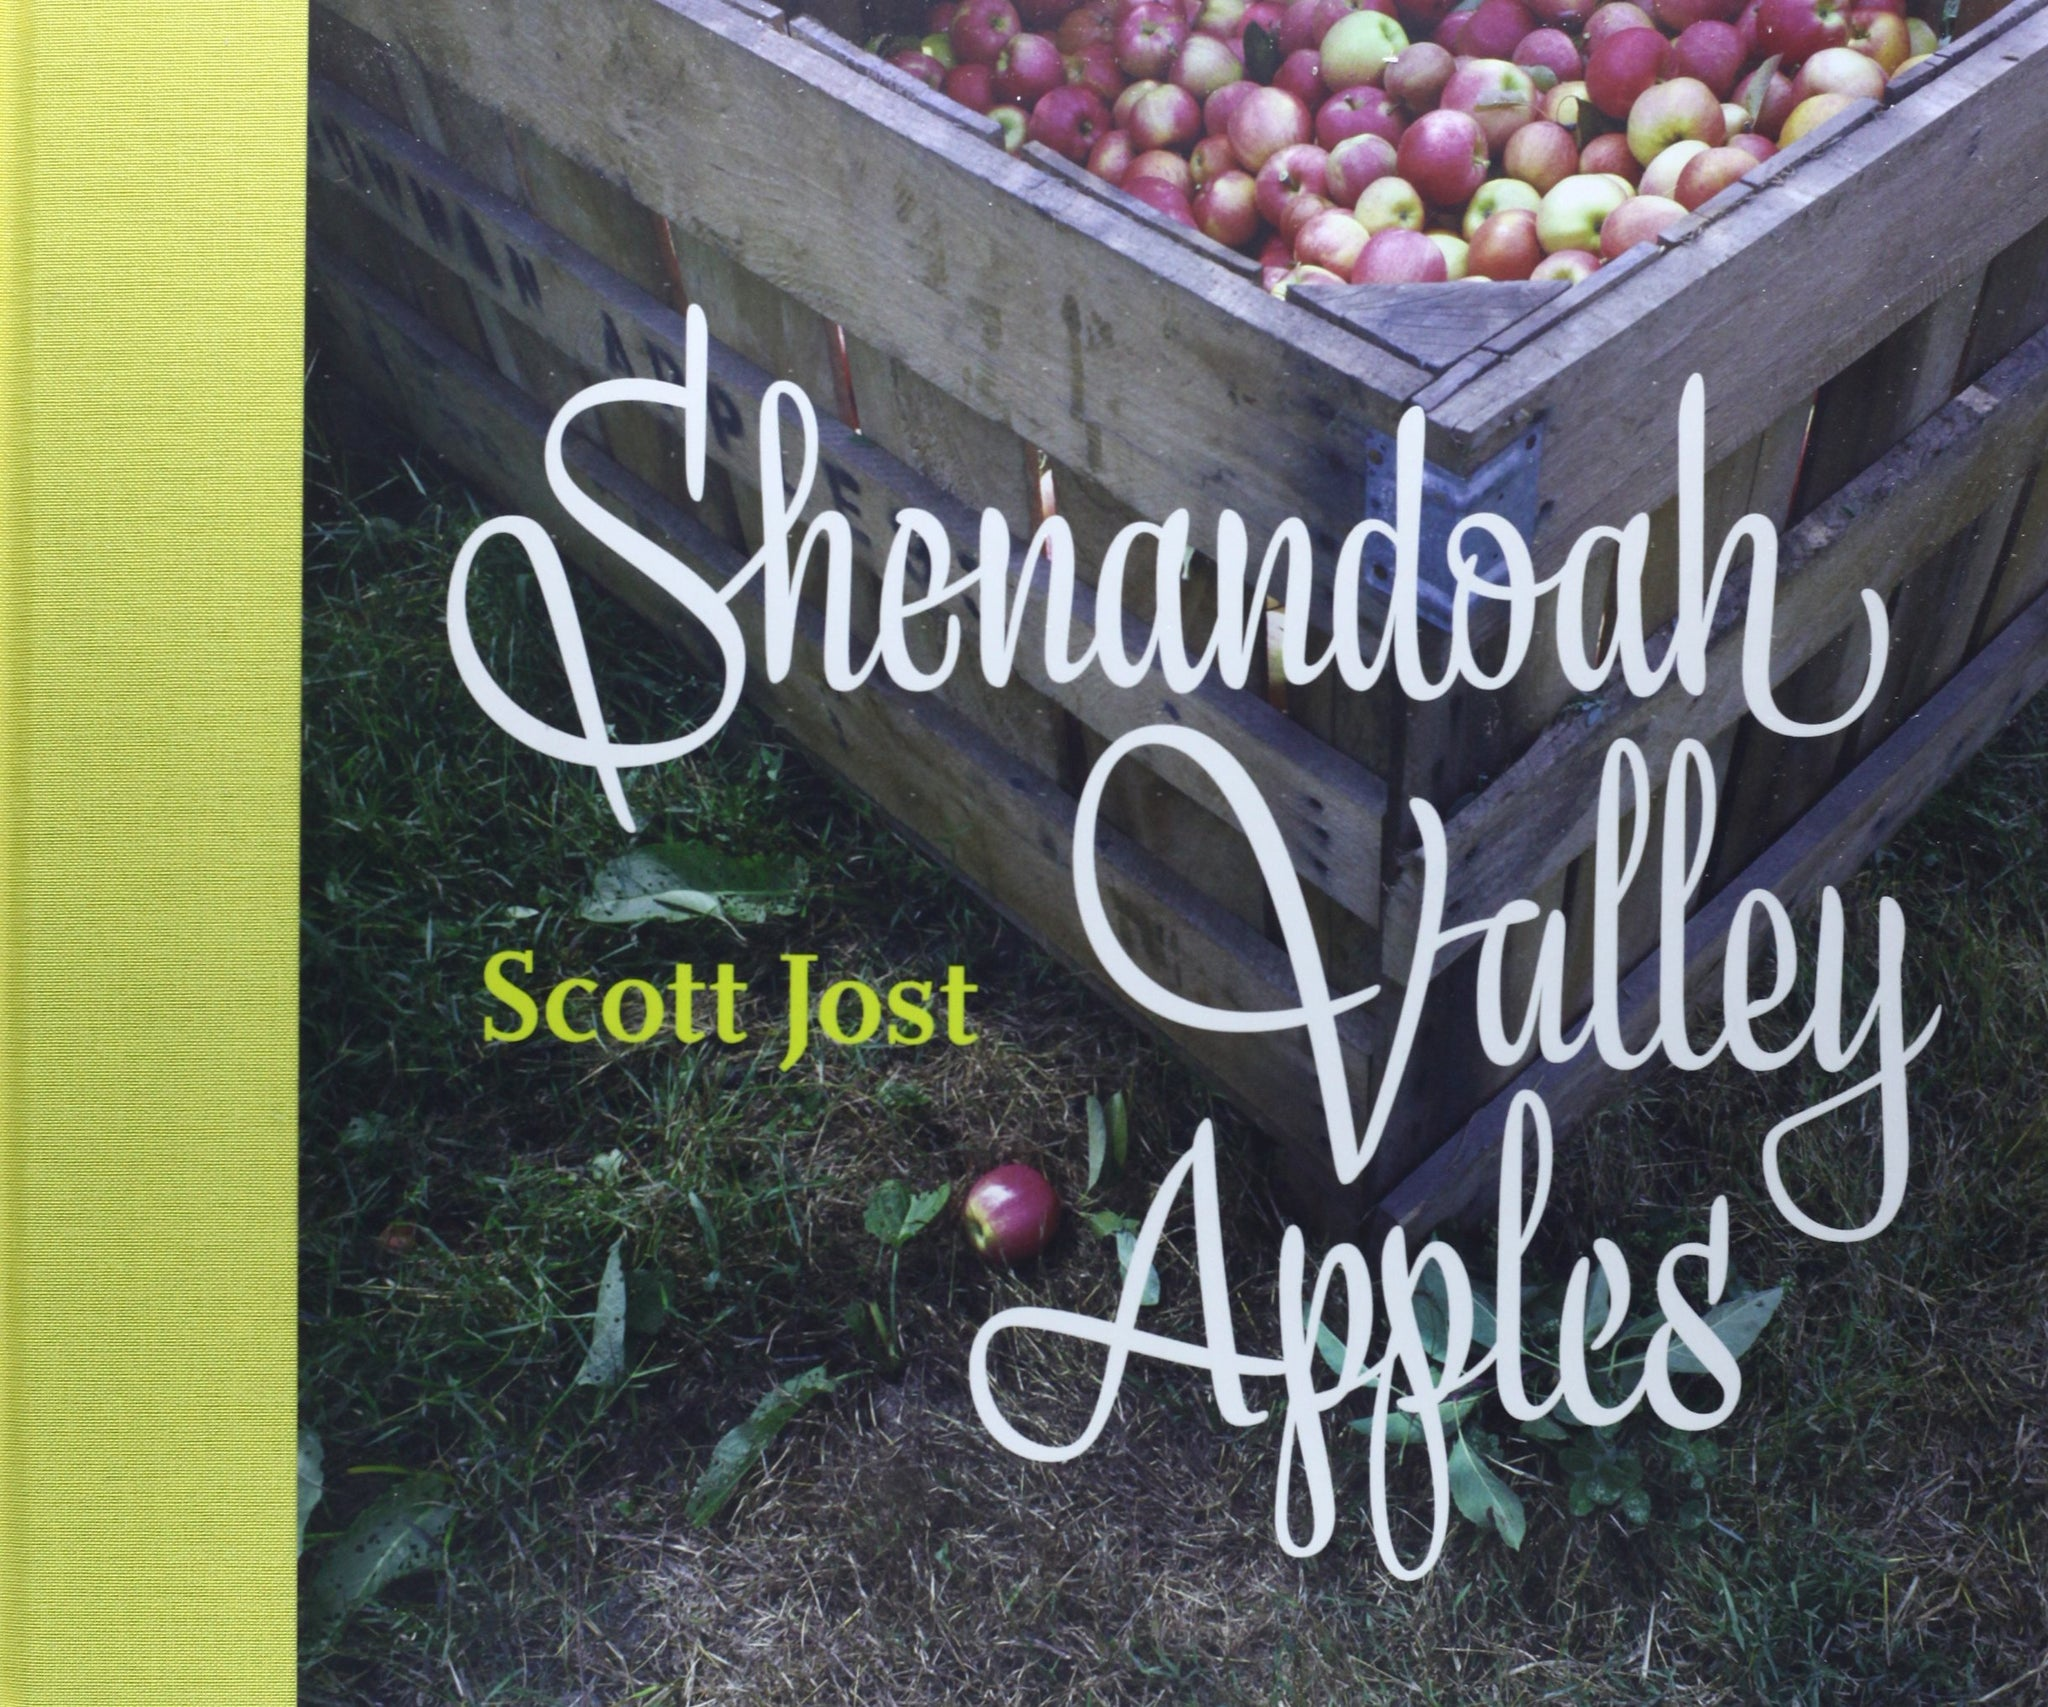 Shenandoah Valley Apples Book